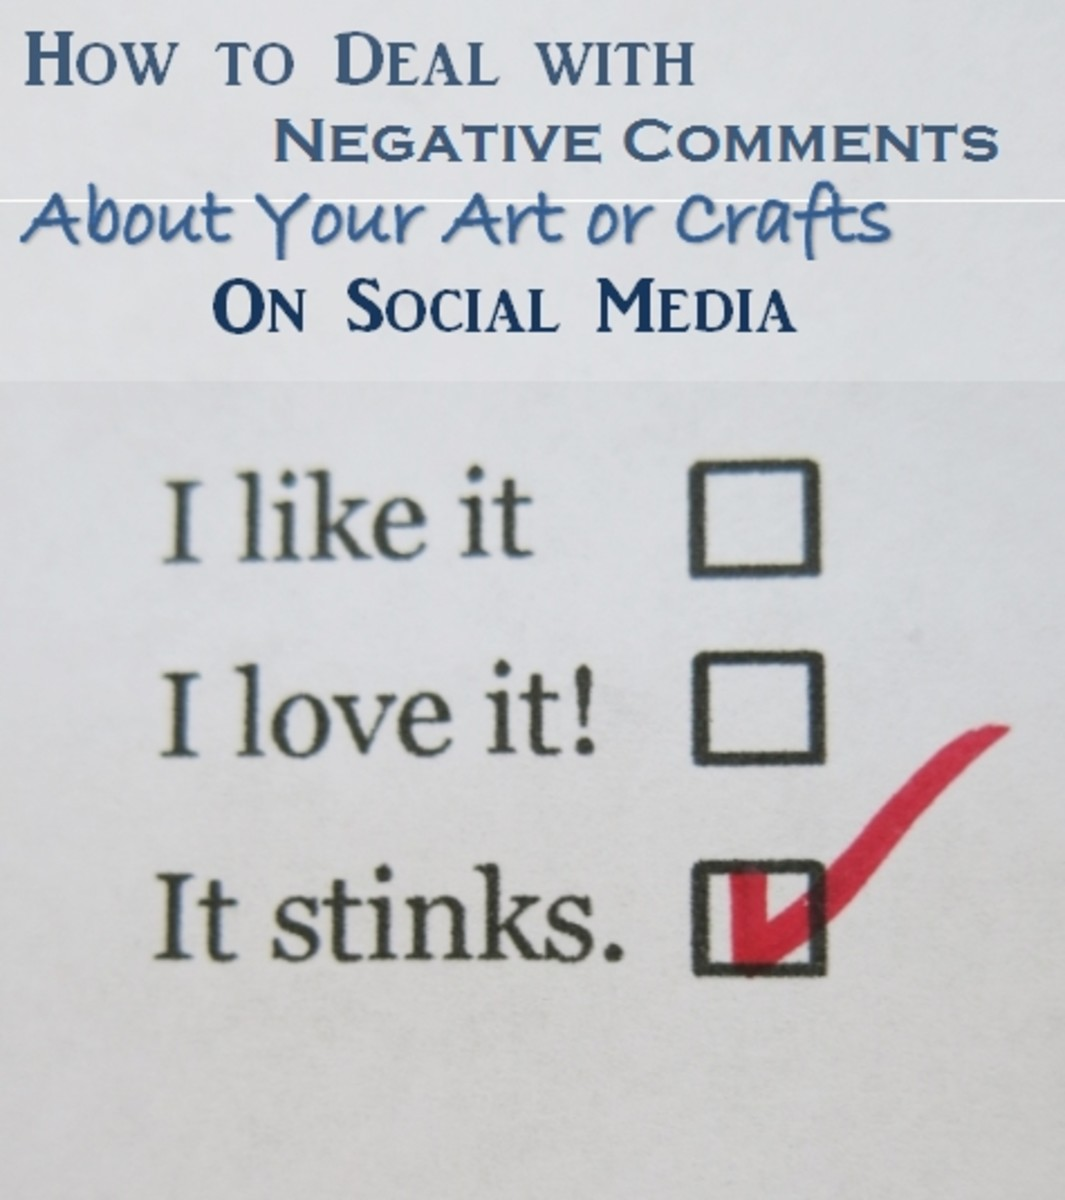 How to Deal With Negative Comments About Your Art or Crafts on Social Media